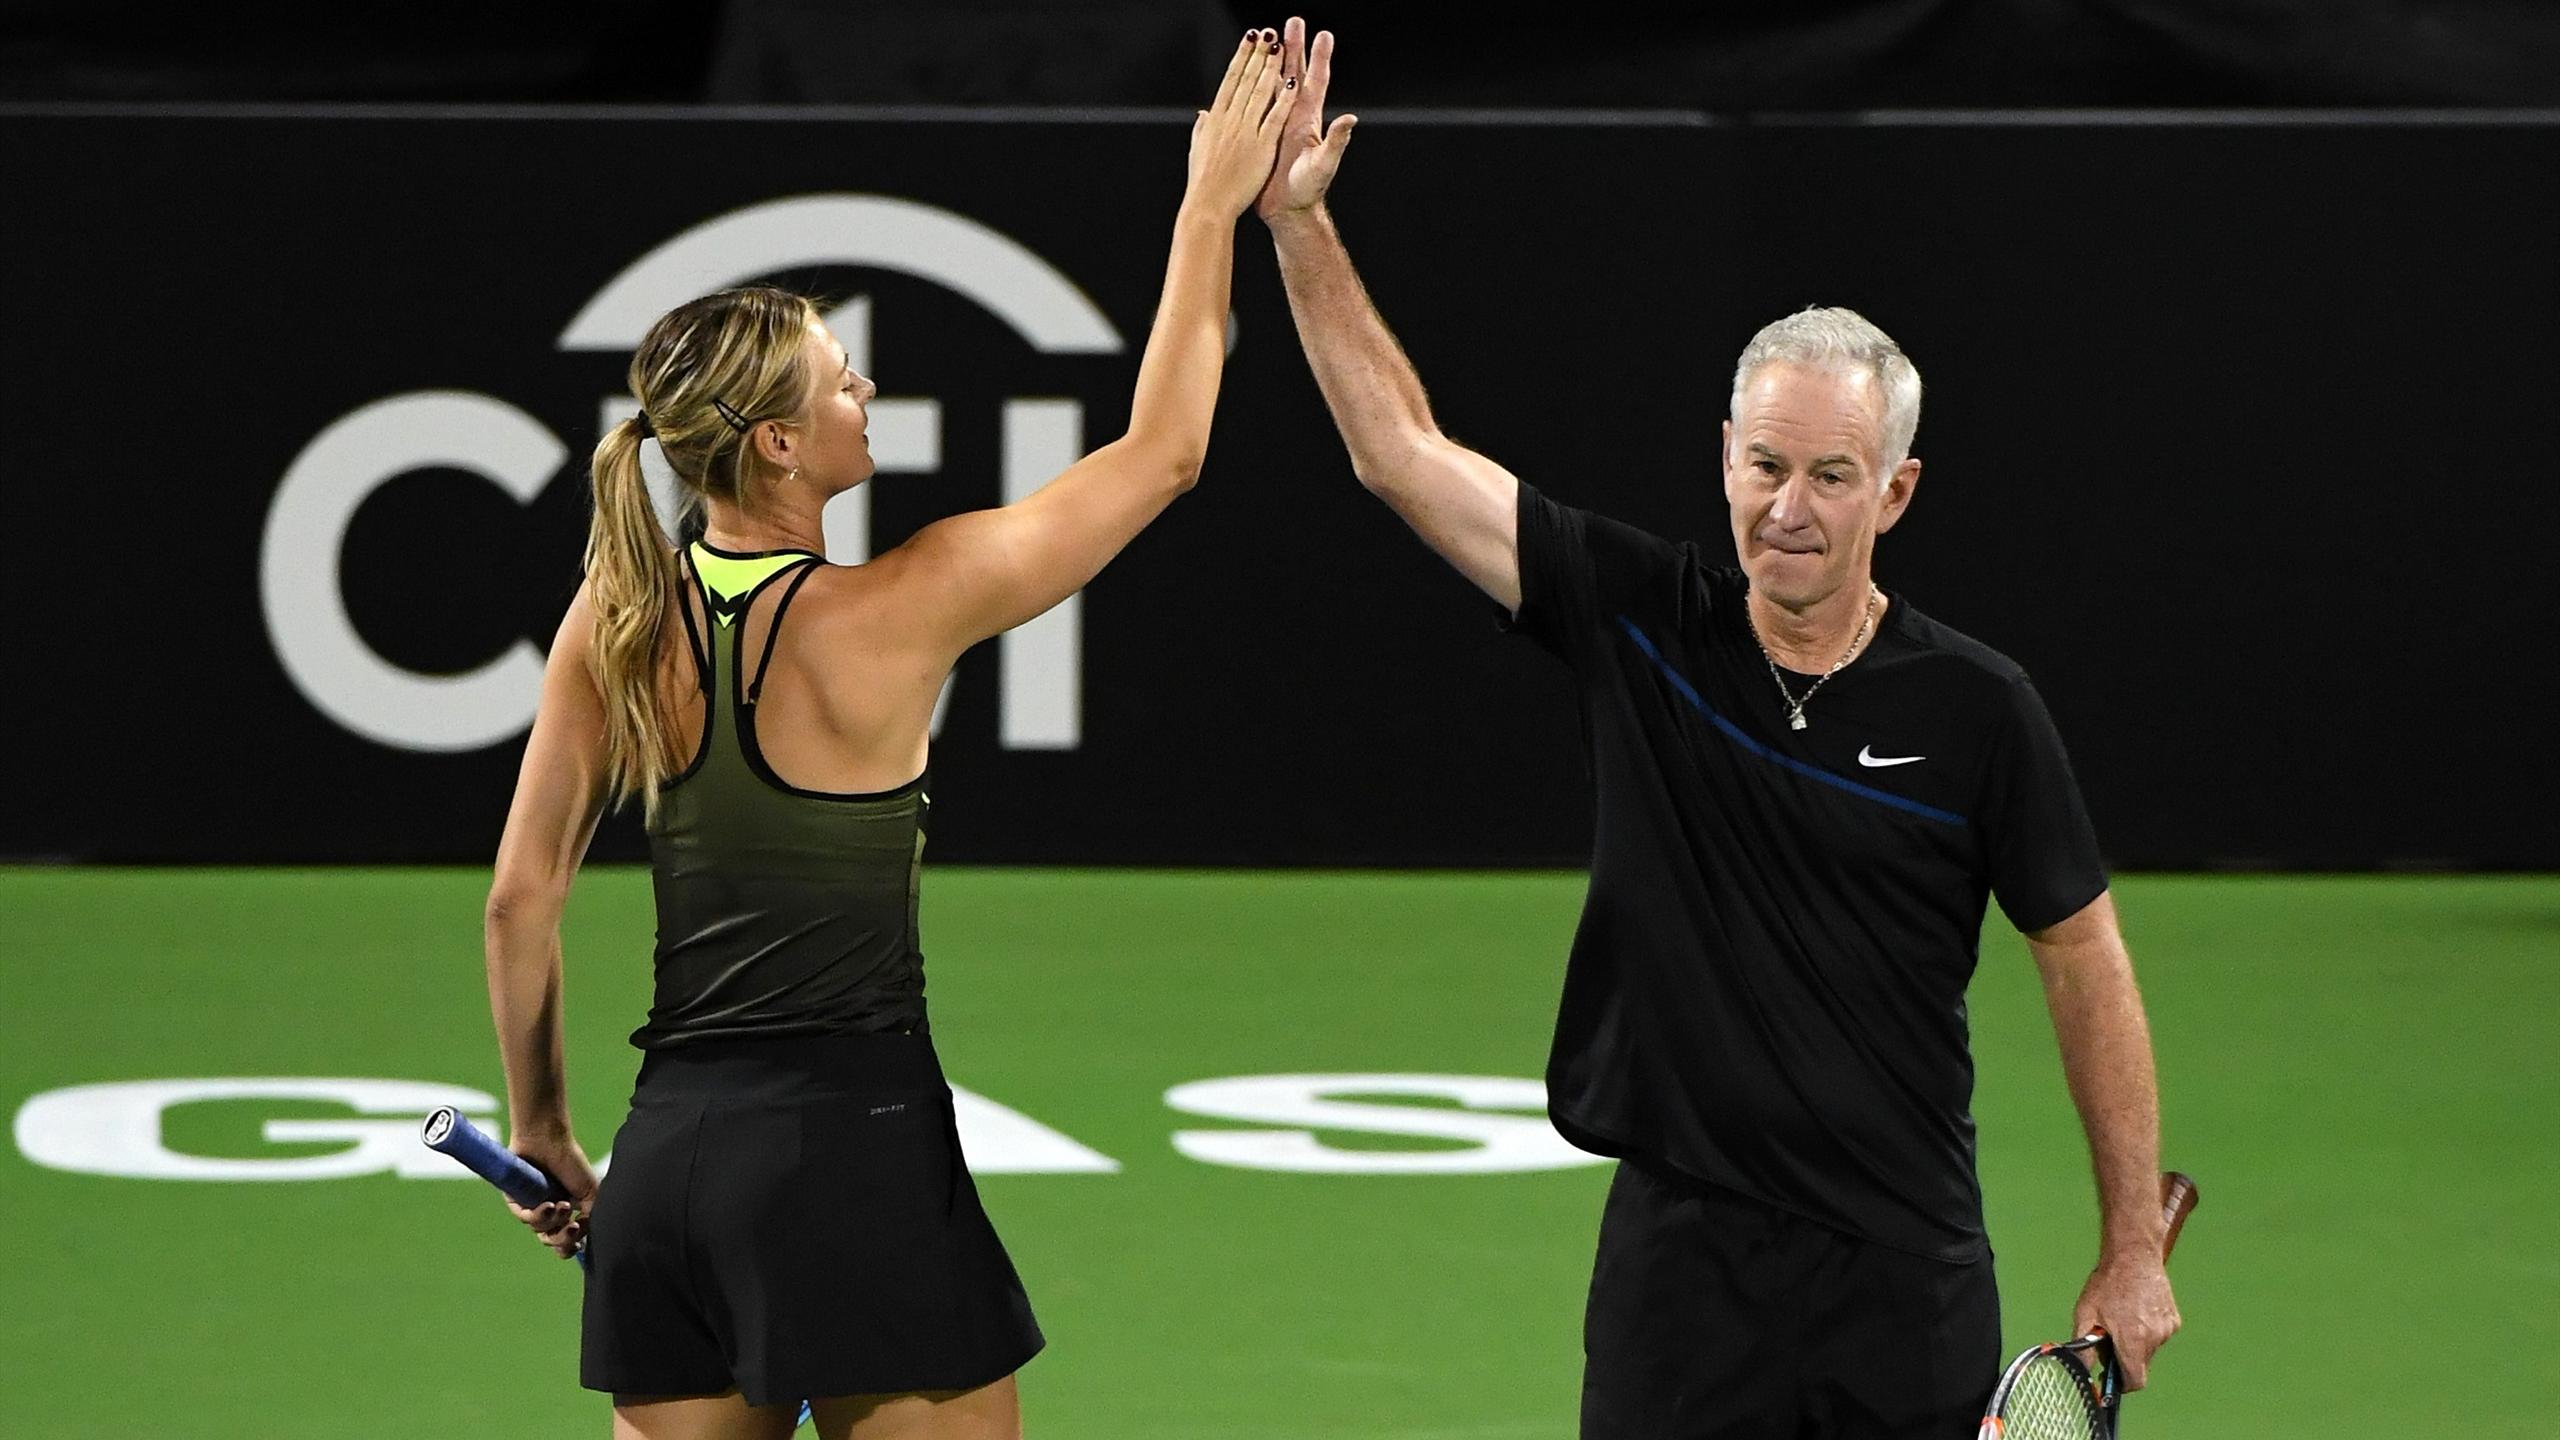 Maria Sharapova celebrates with John McEnroe at the World TeamTennis Smash Hits charity tennis event benefiting the Elton John AIDS Foundation at Caesars Palace on October 10, 2016 in Las Vegas, Nevada